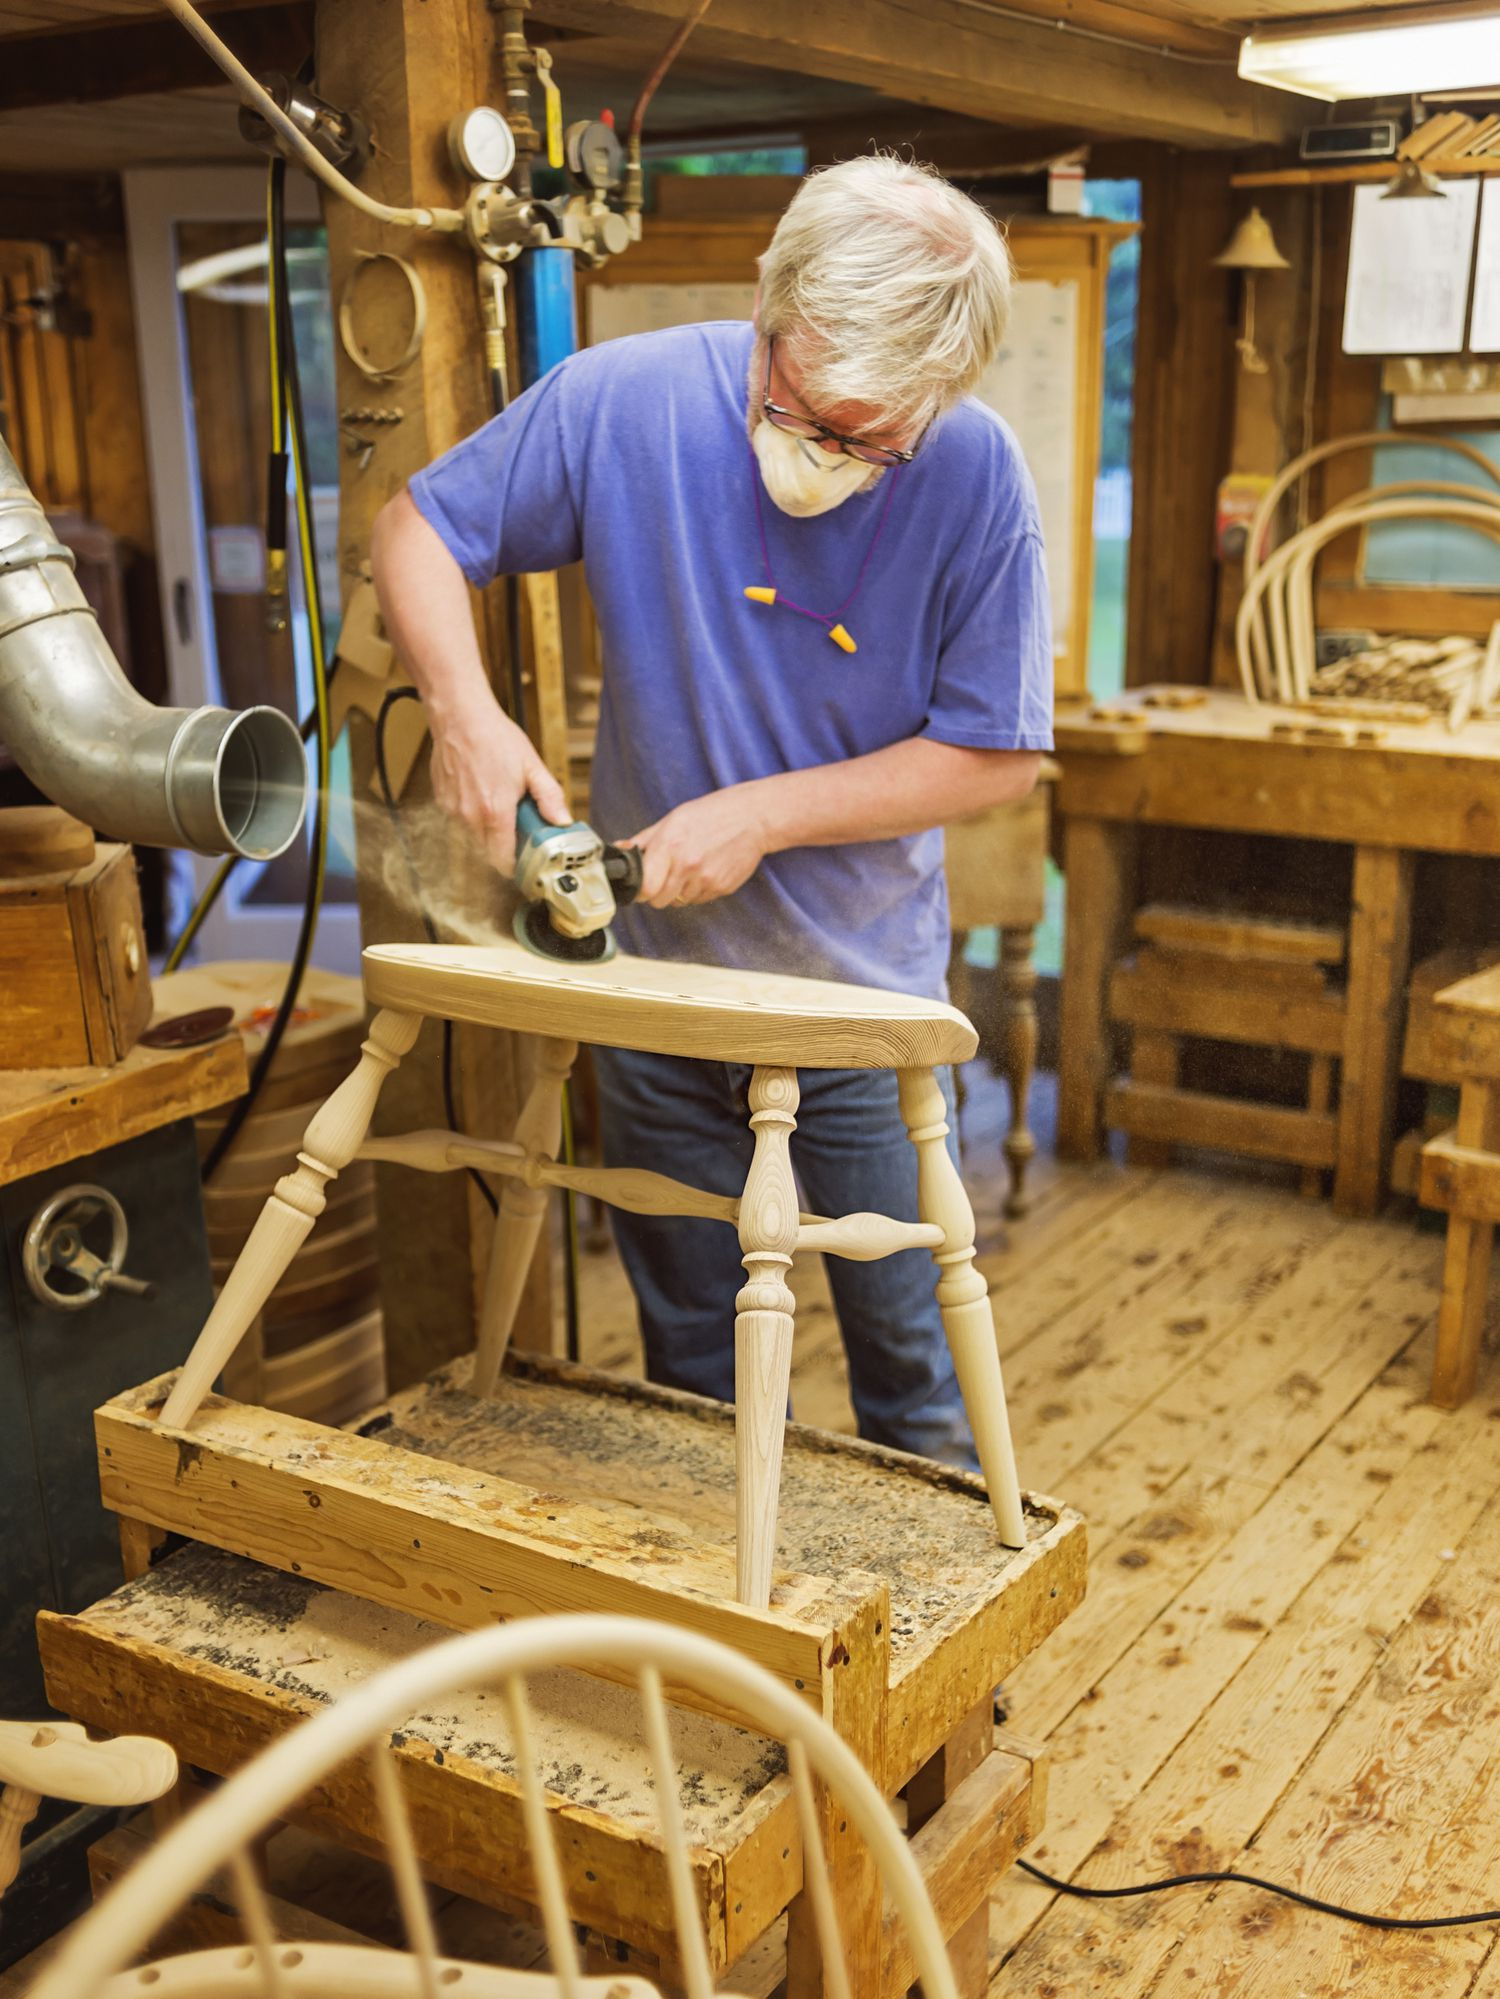 How to Start a Furniture Refinishing Business